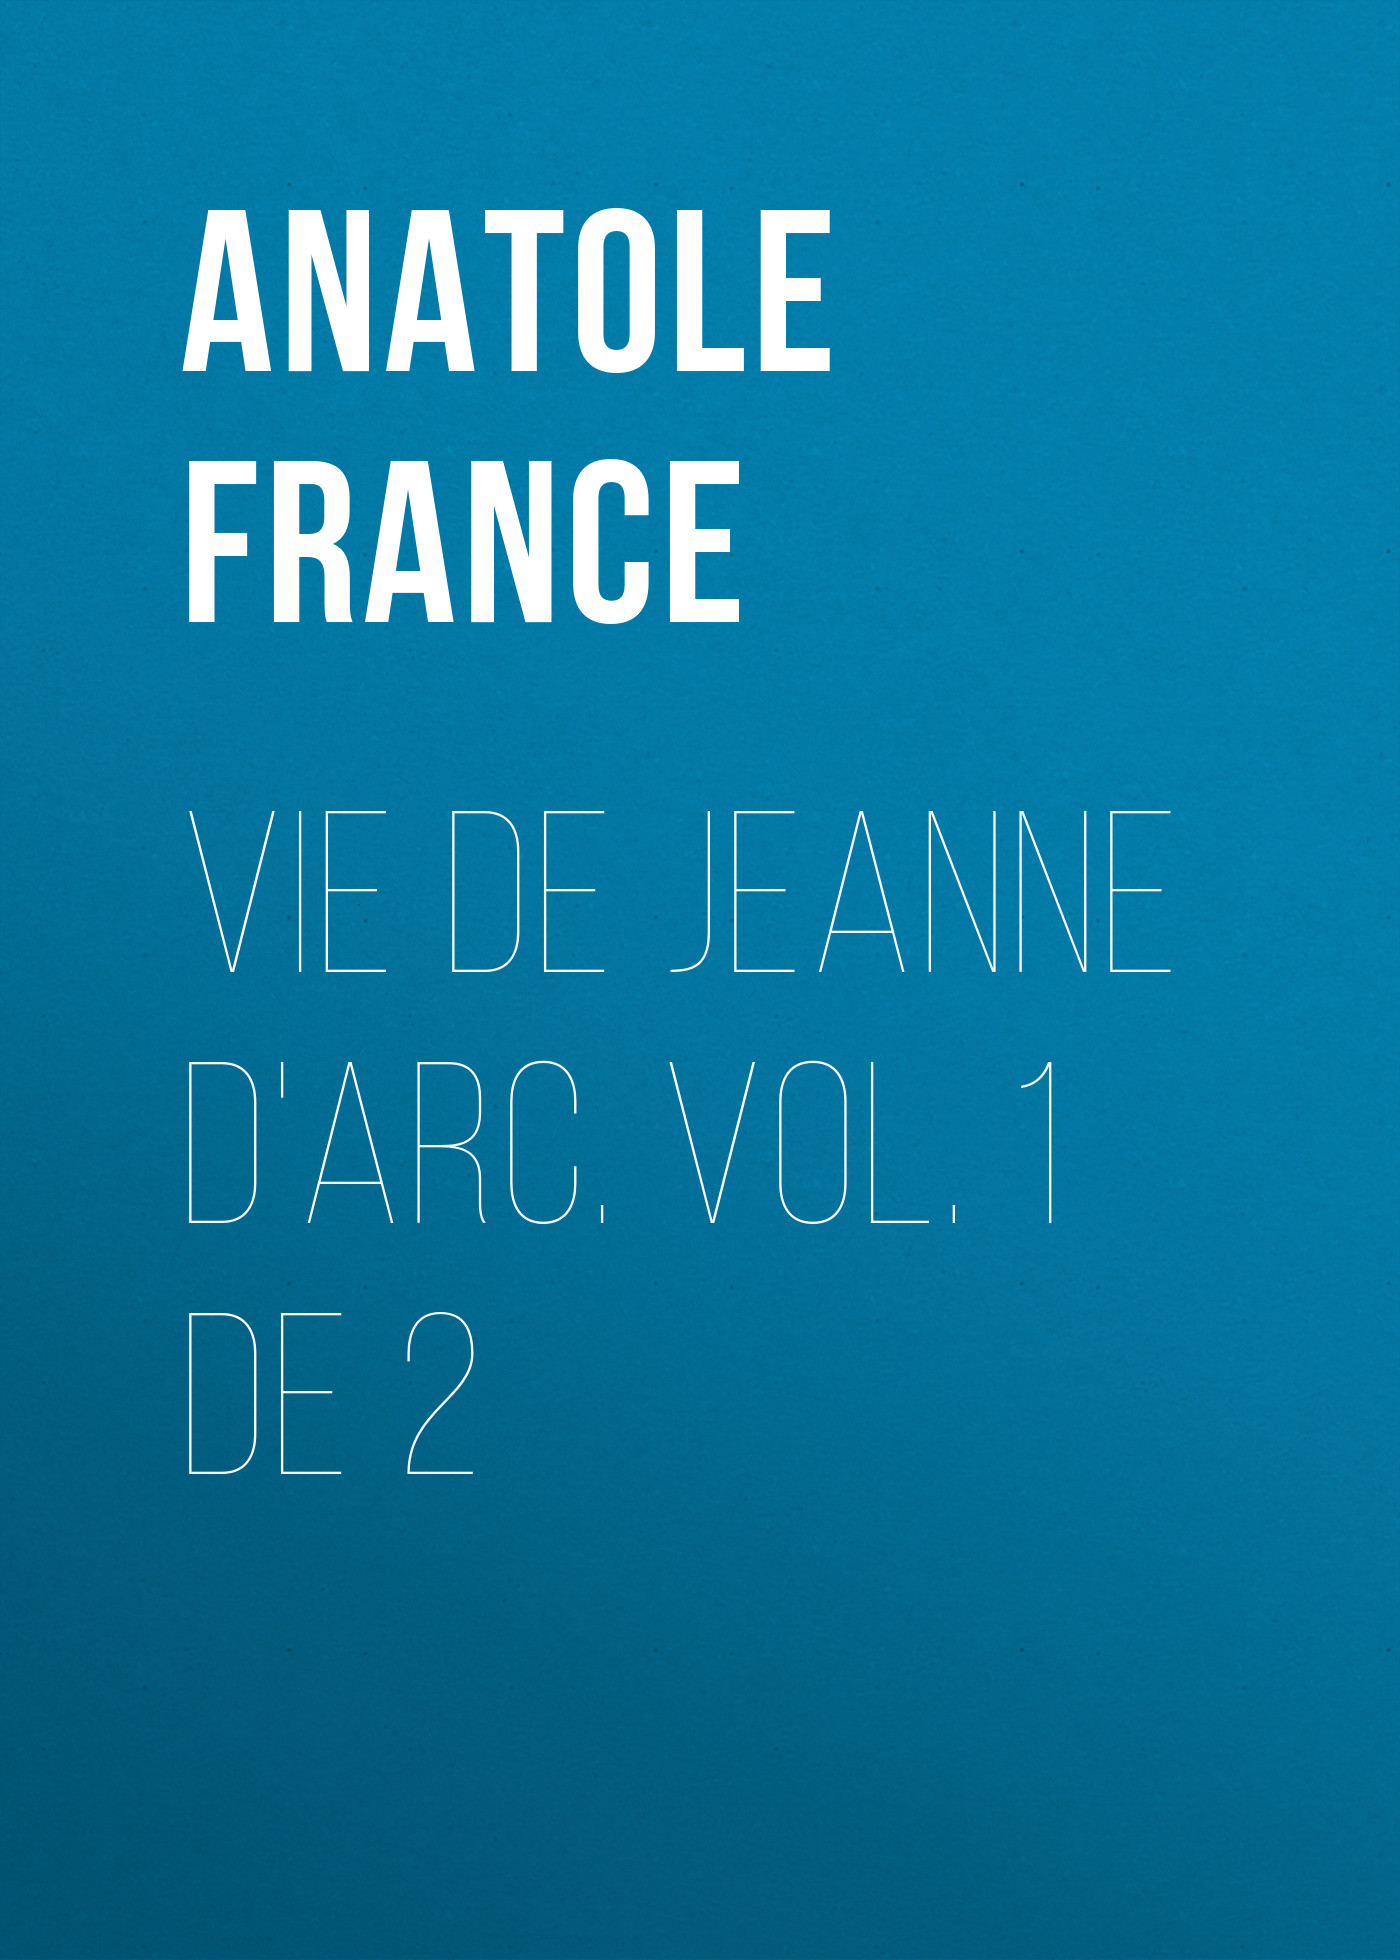 цена Anatole France Vie de Jeanne d'Arc. Vol. 1 de 2 онлайн в 2017 году